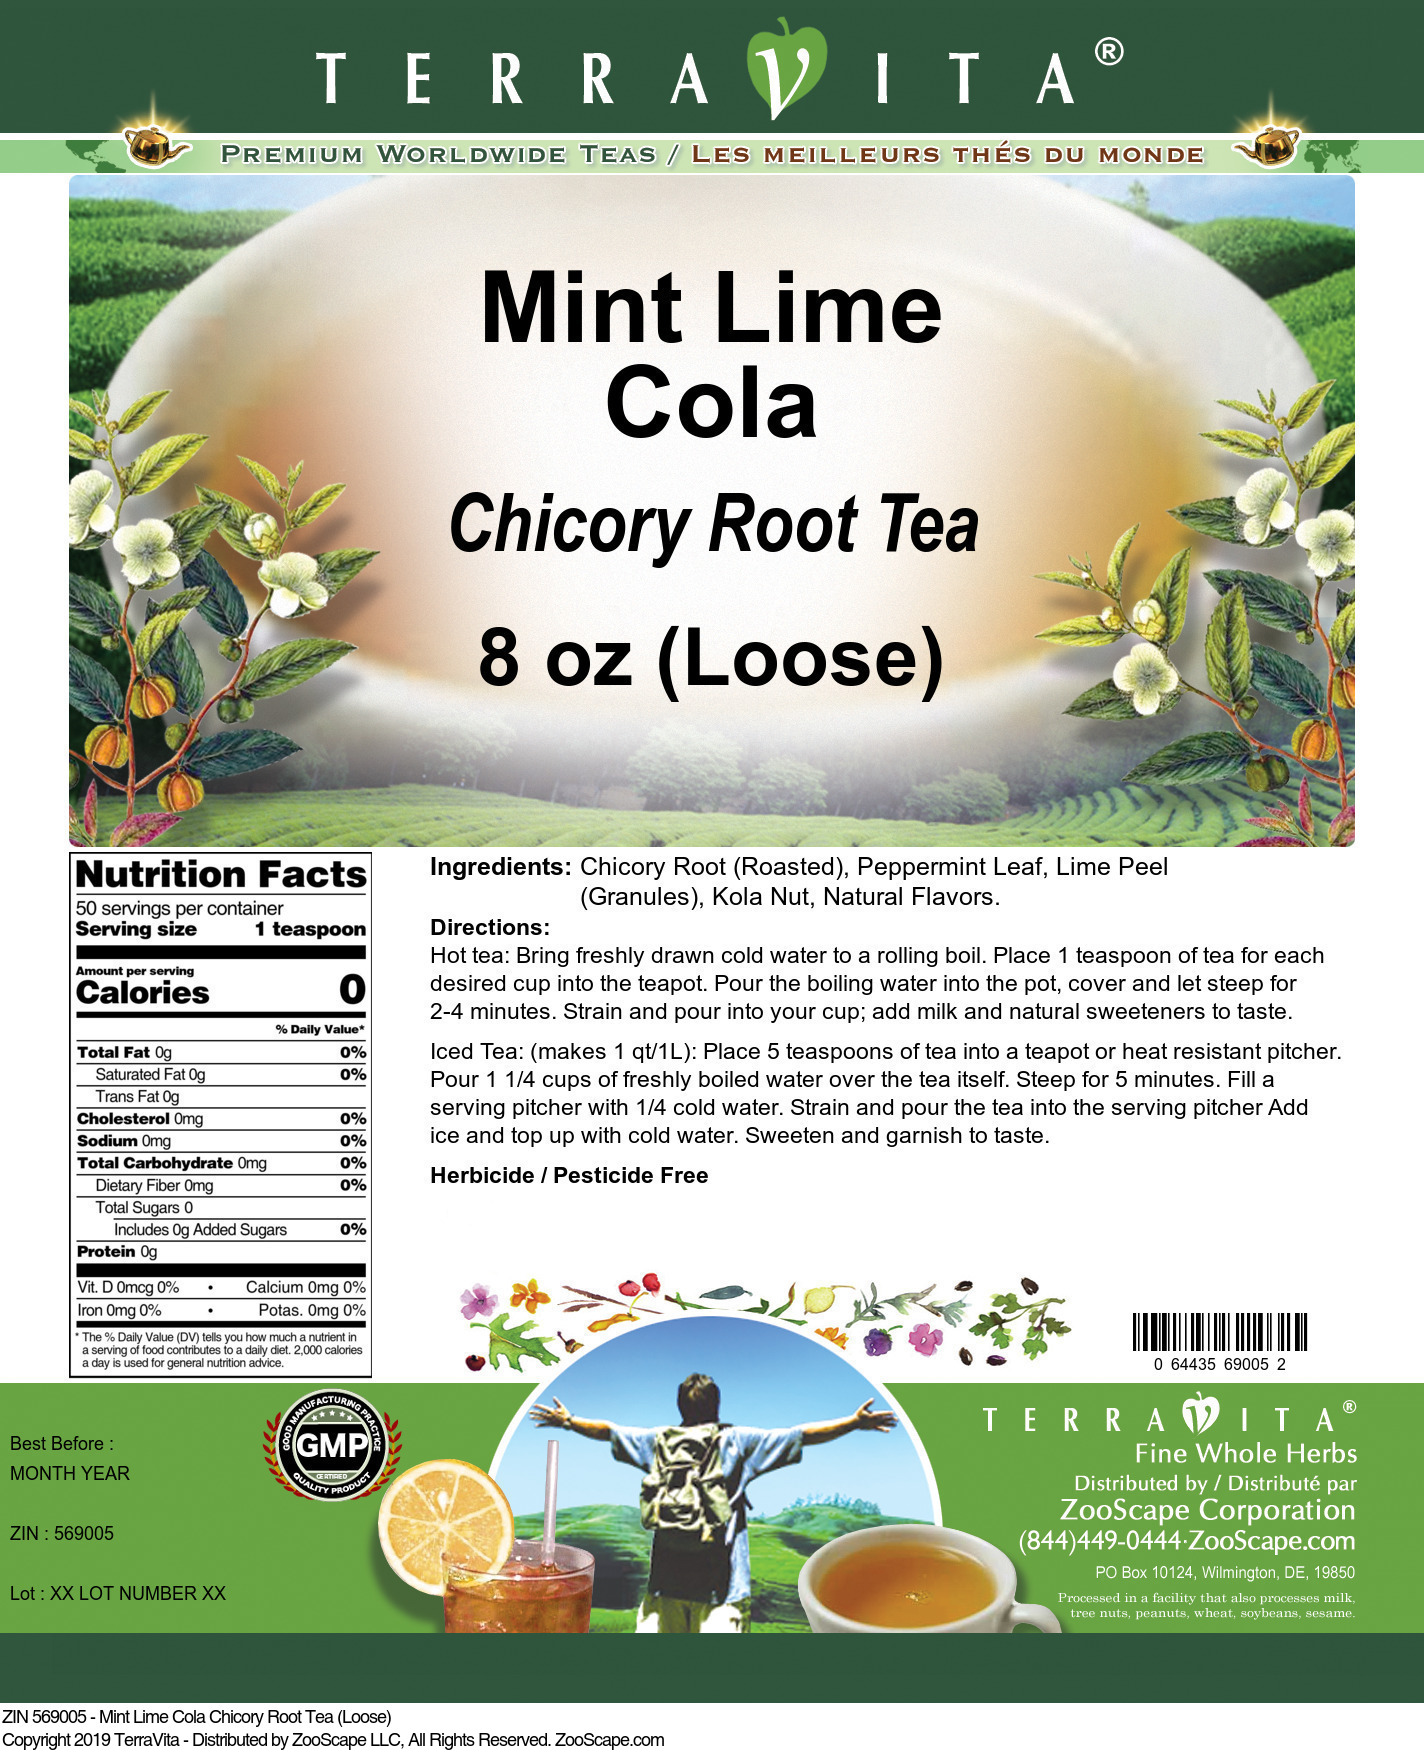 Mint Lime Cola Chicory Root Tea (Loose)